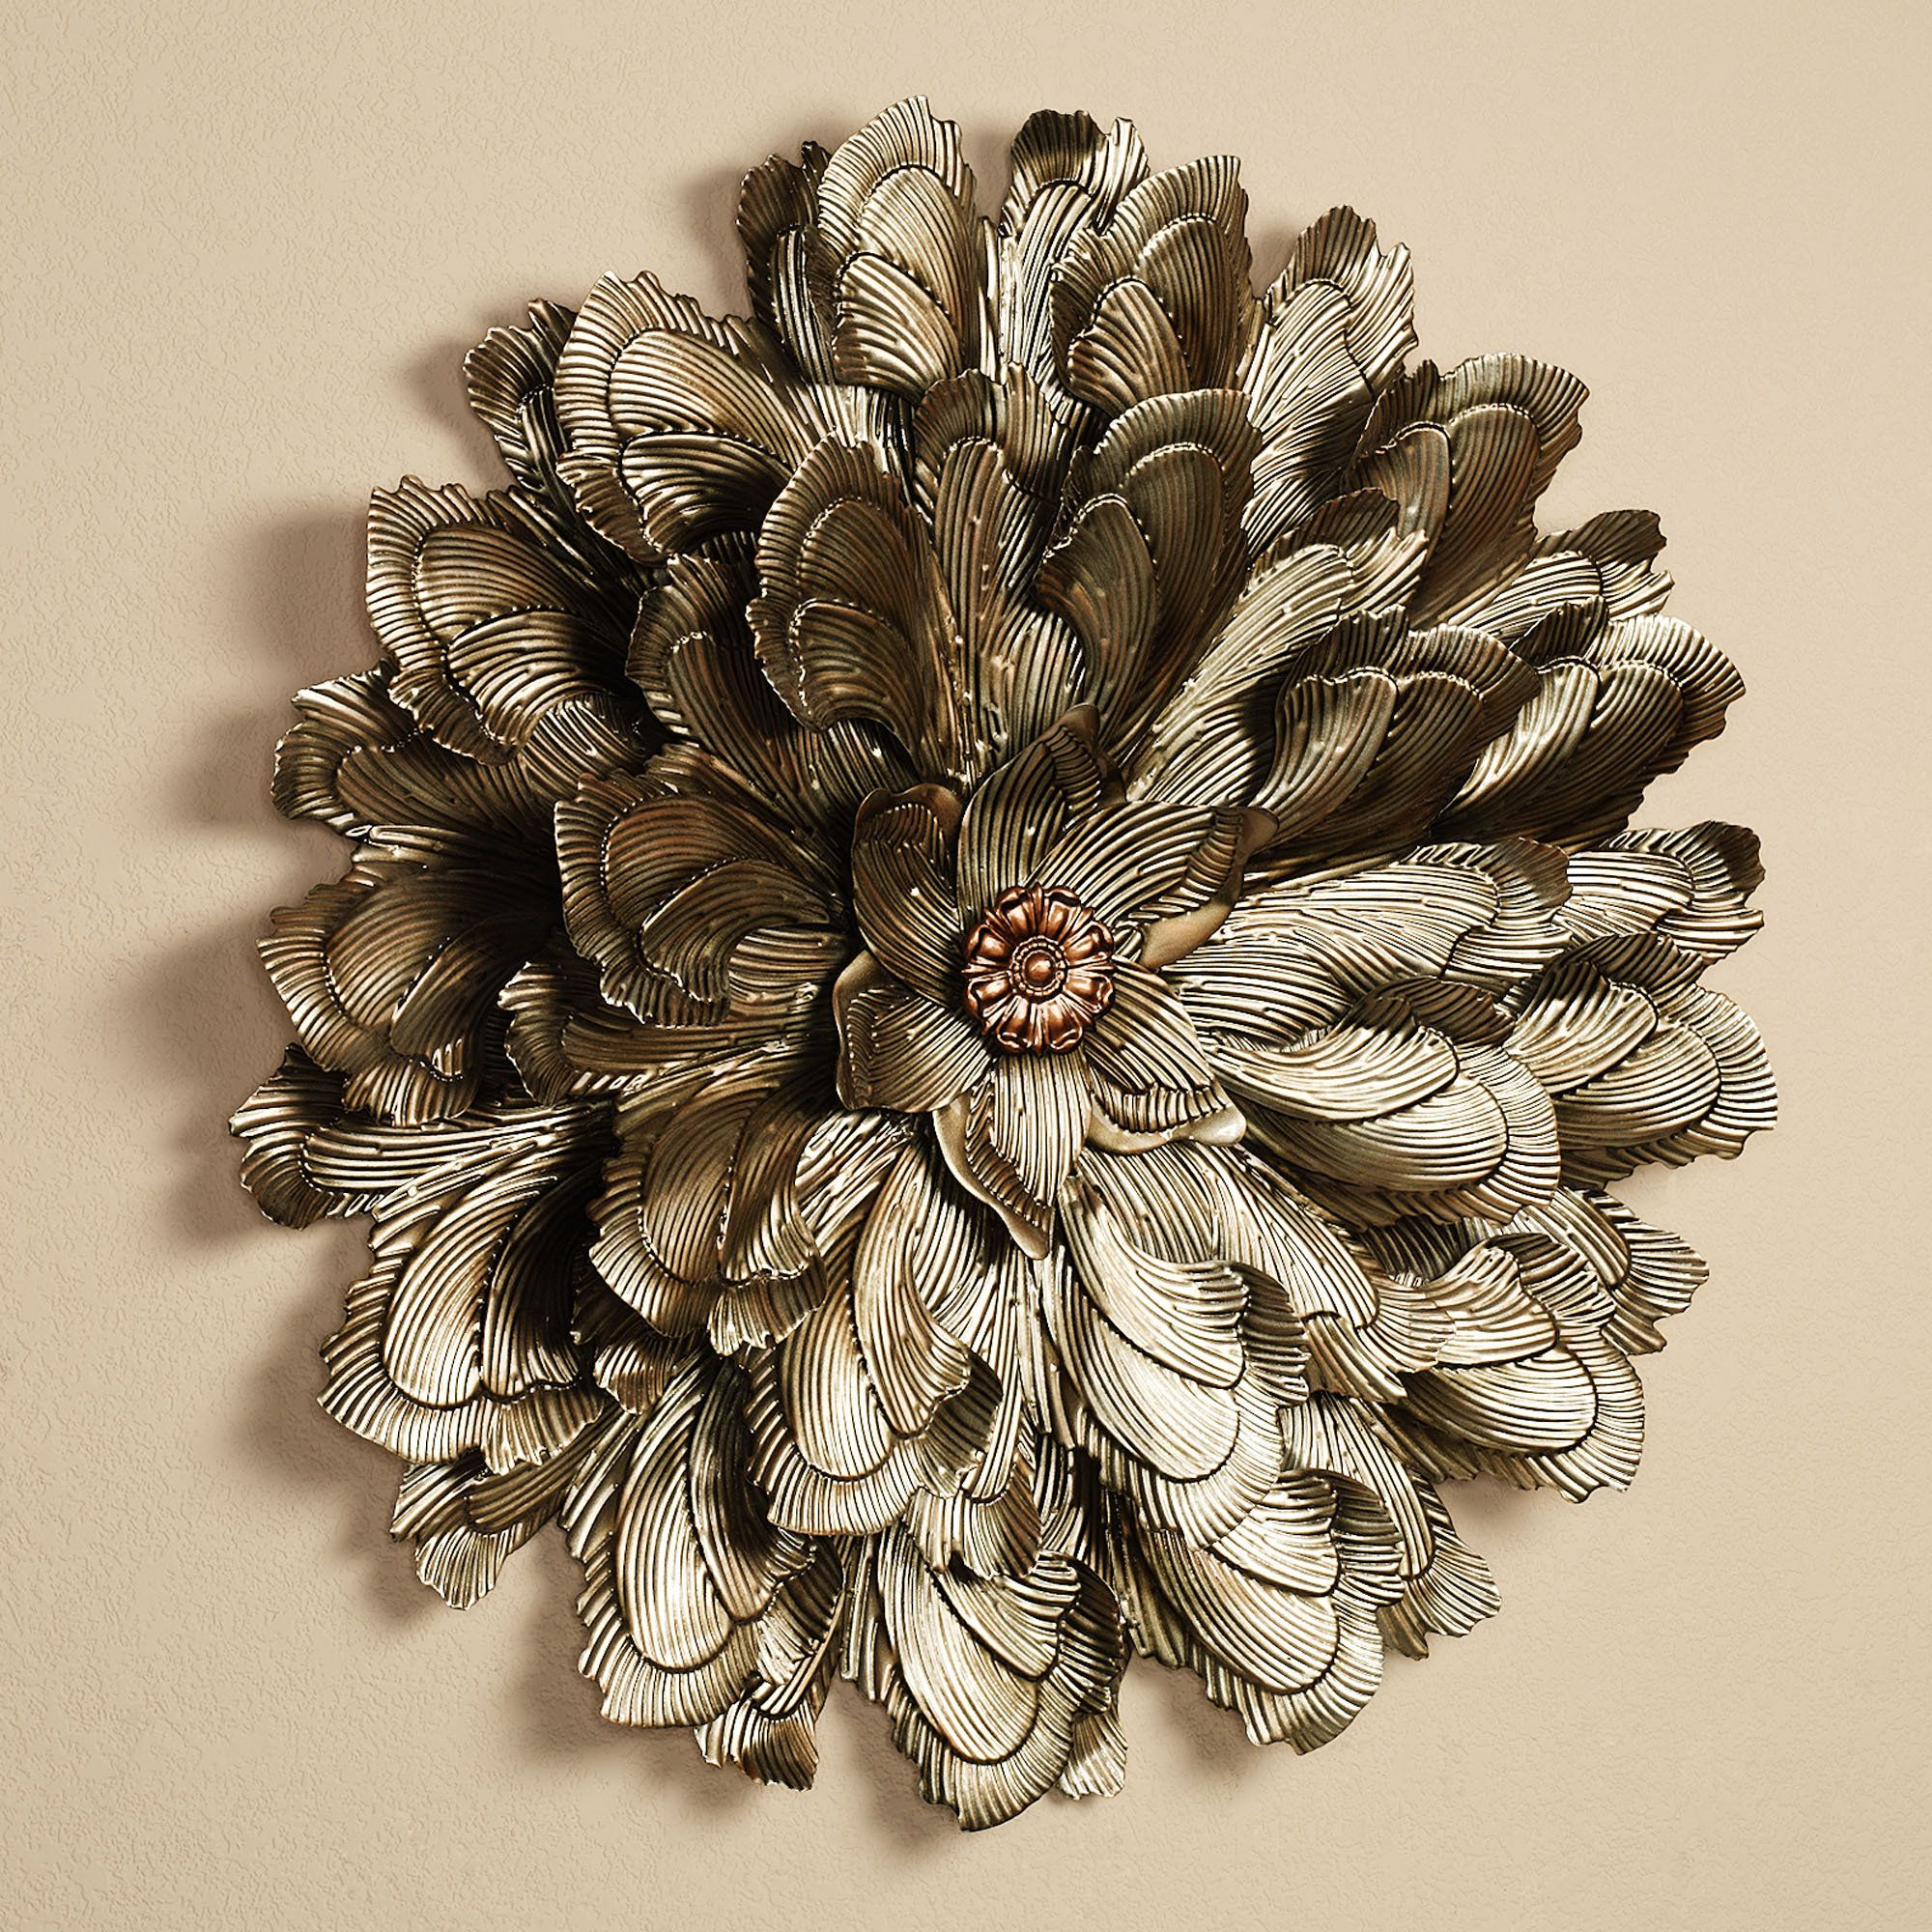 Flower Metal Wall Art delicate flower blossom metal wall sculpture | sculpture, floral